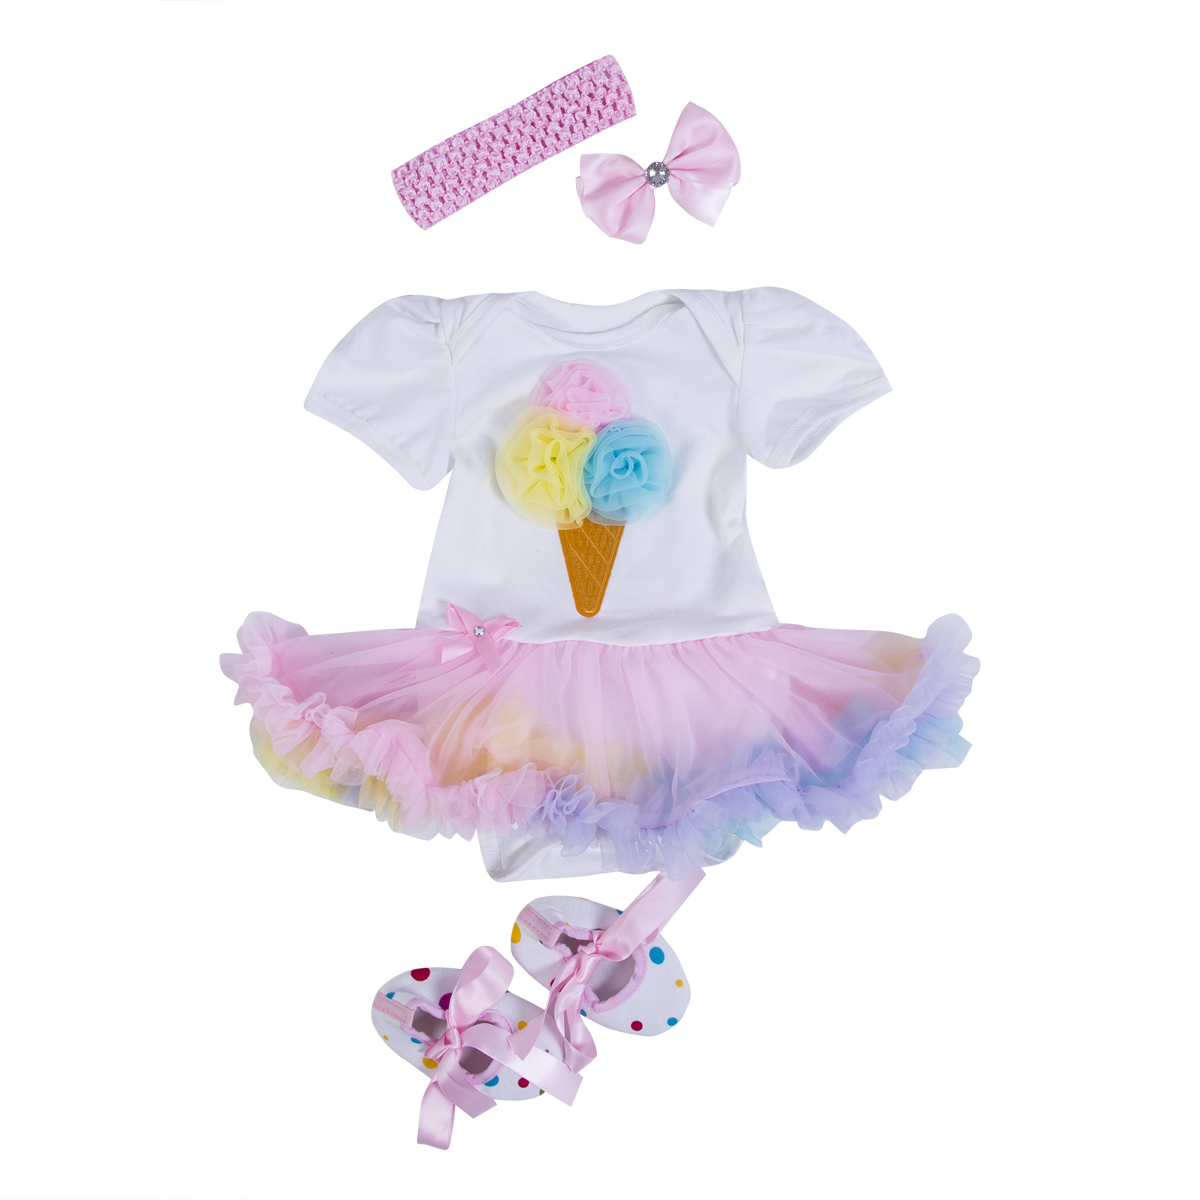 Pudcoco 4pcs Cotton Newborn Girls Clothes Set Tulle Princess Romper +Shoes+headband +hair pin Infant Girl Birthday Costume Gift